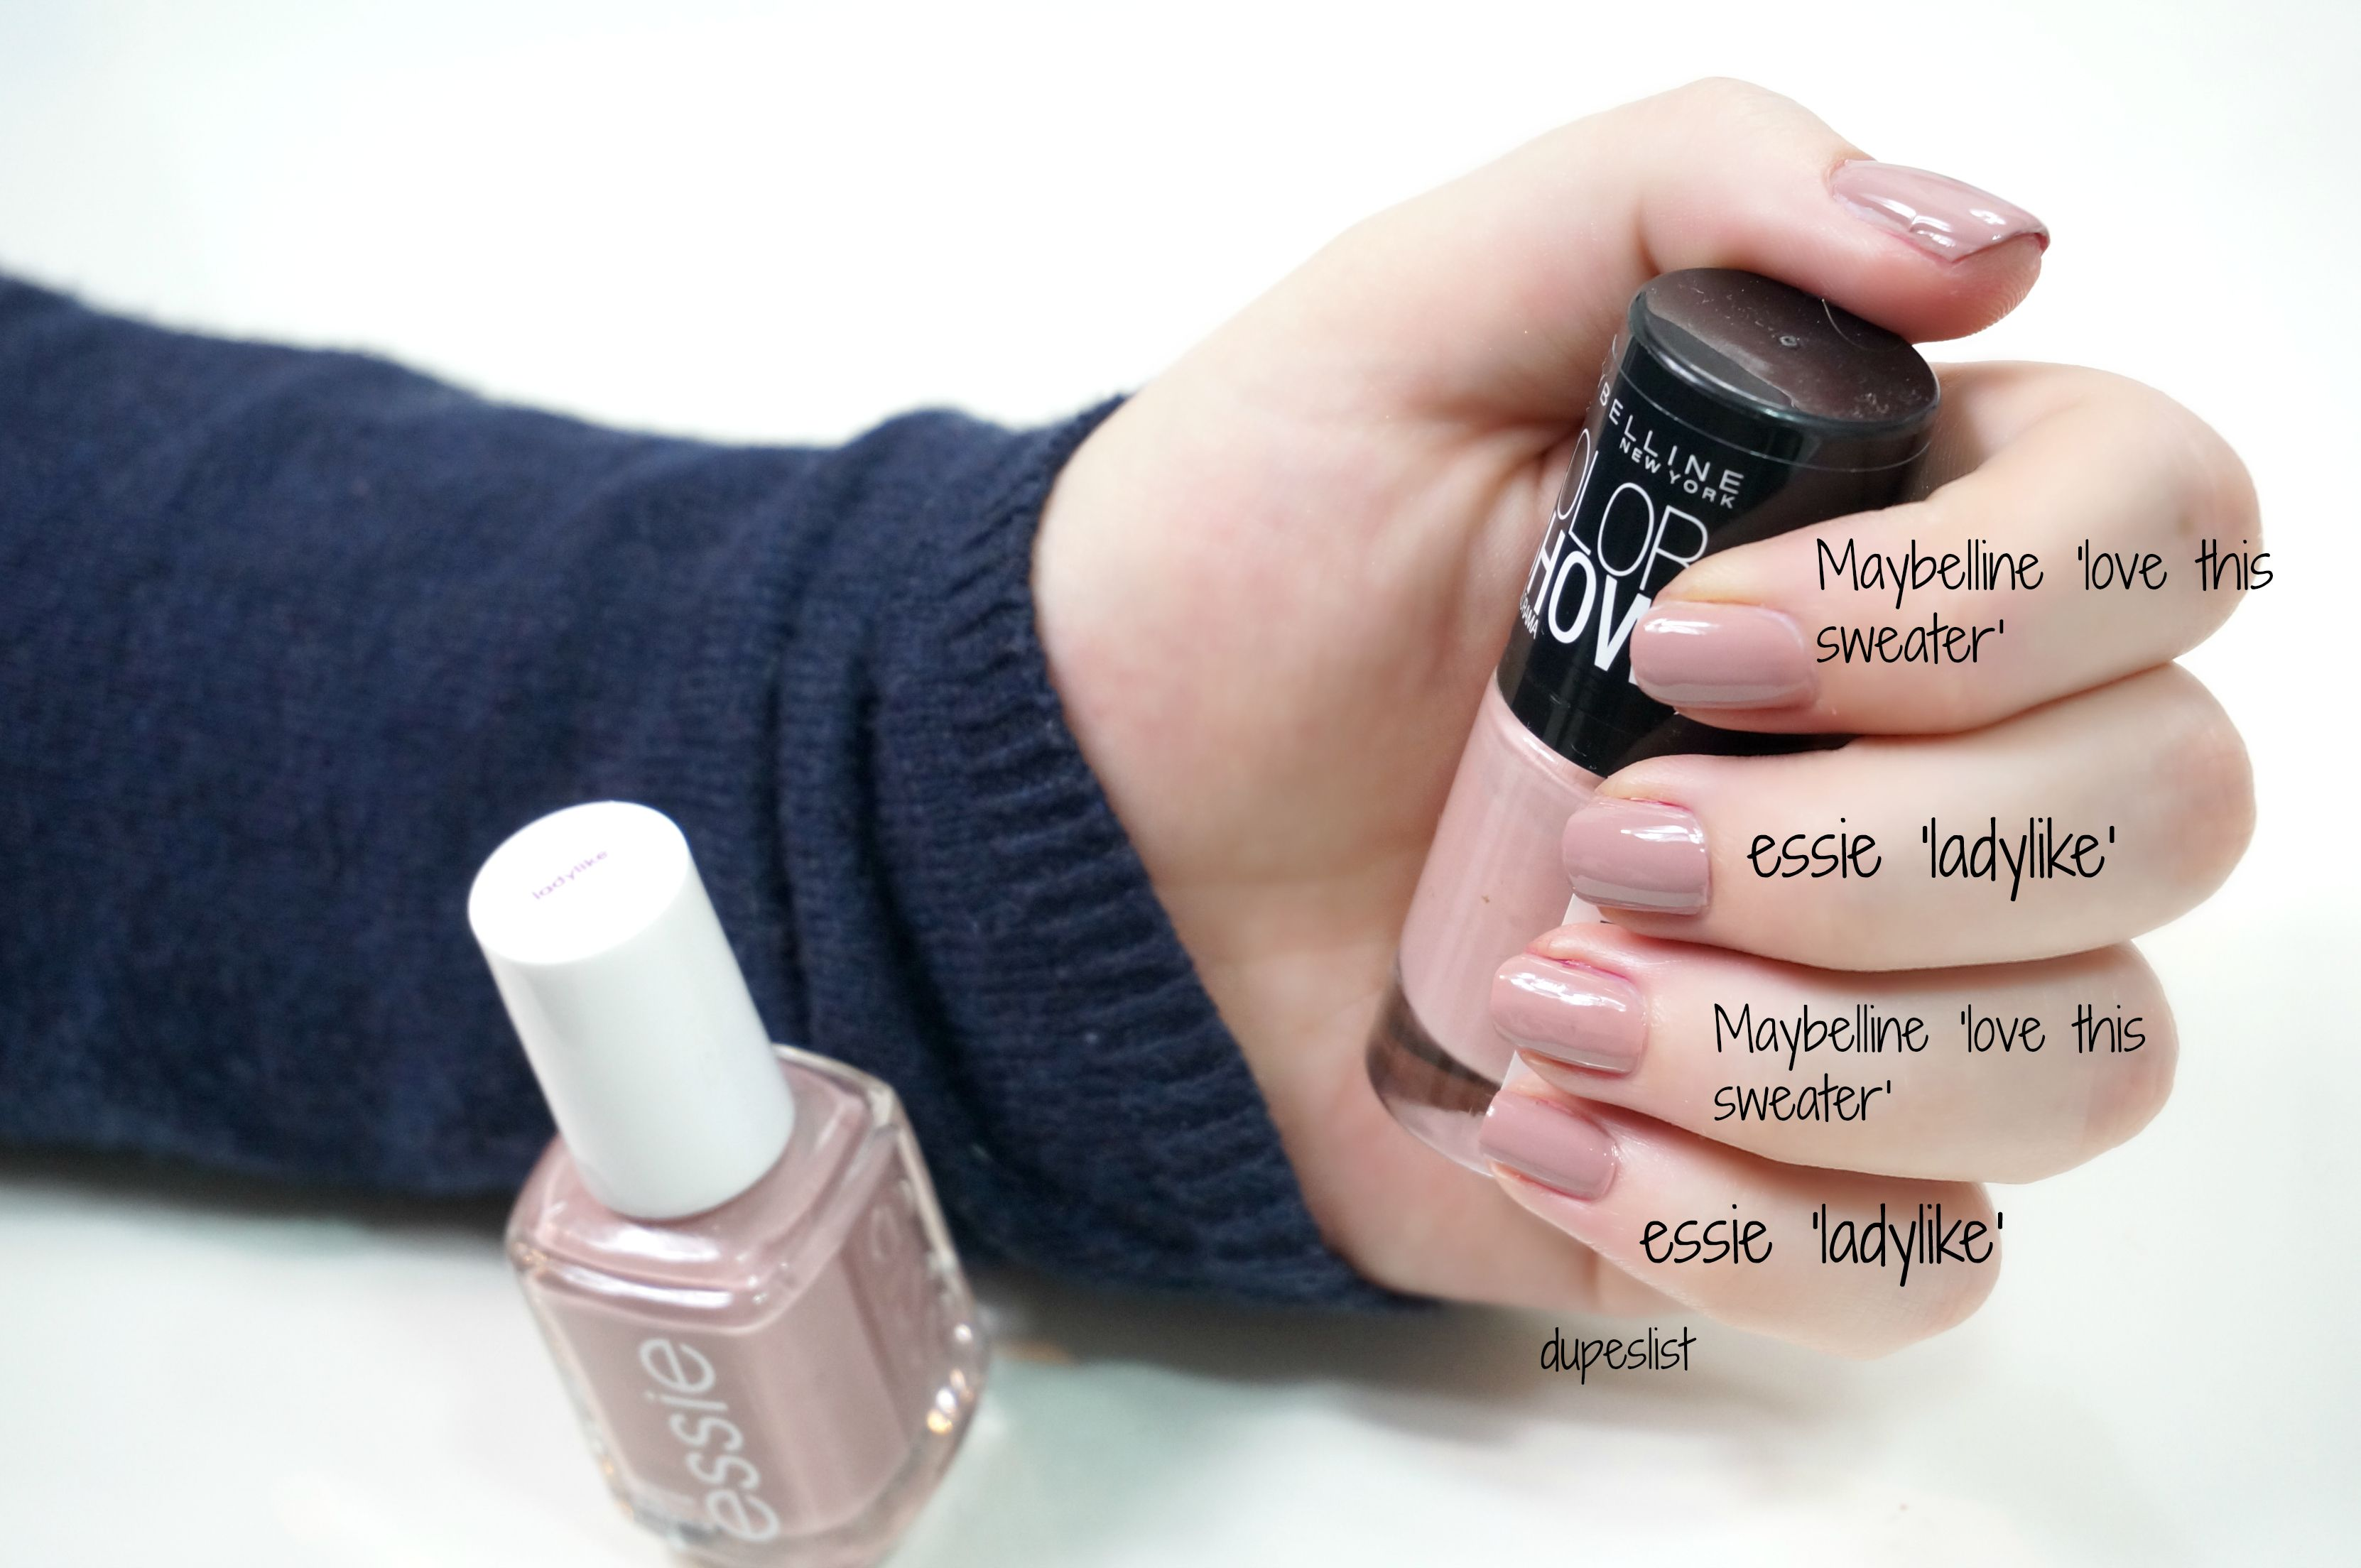 essie ladylike Dupe: Maybelline \'301 love this sweater\'   Makeup ...